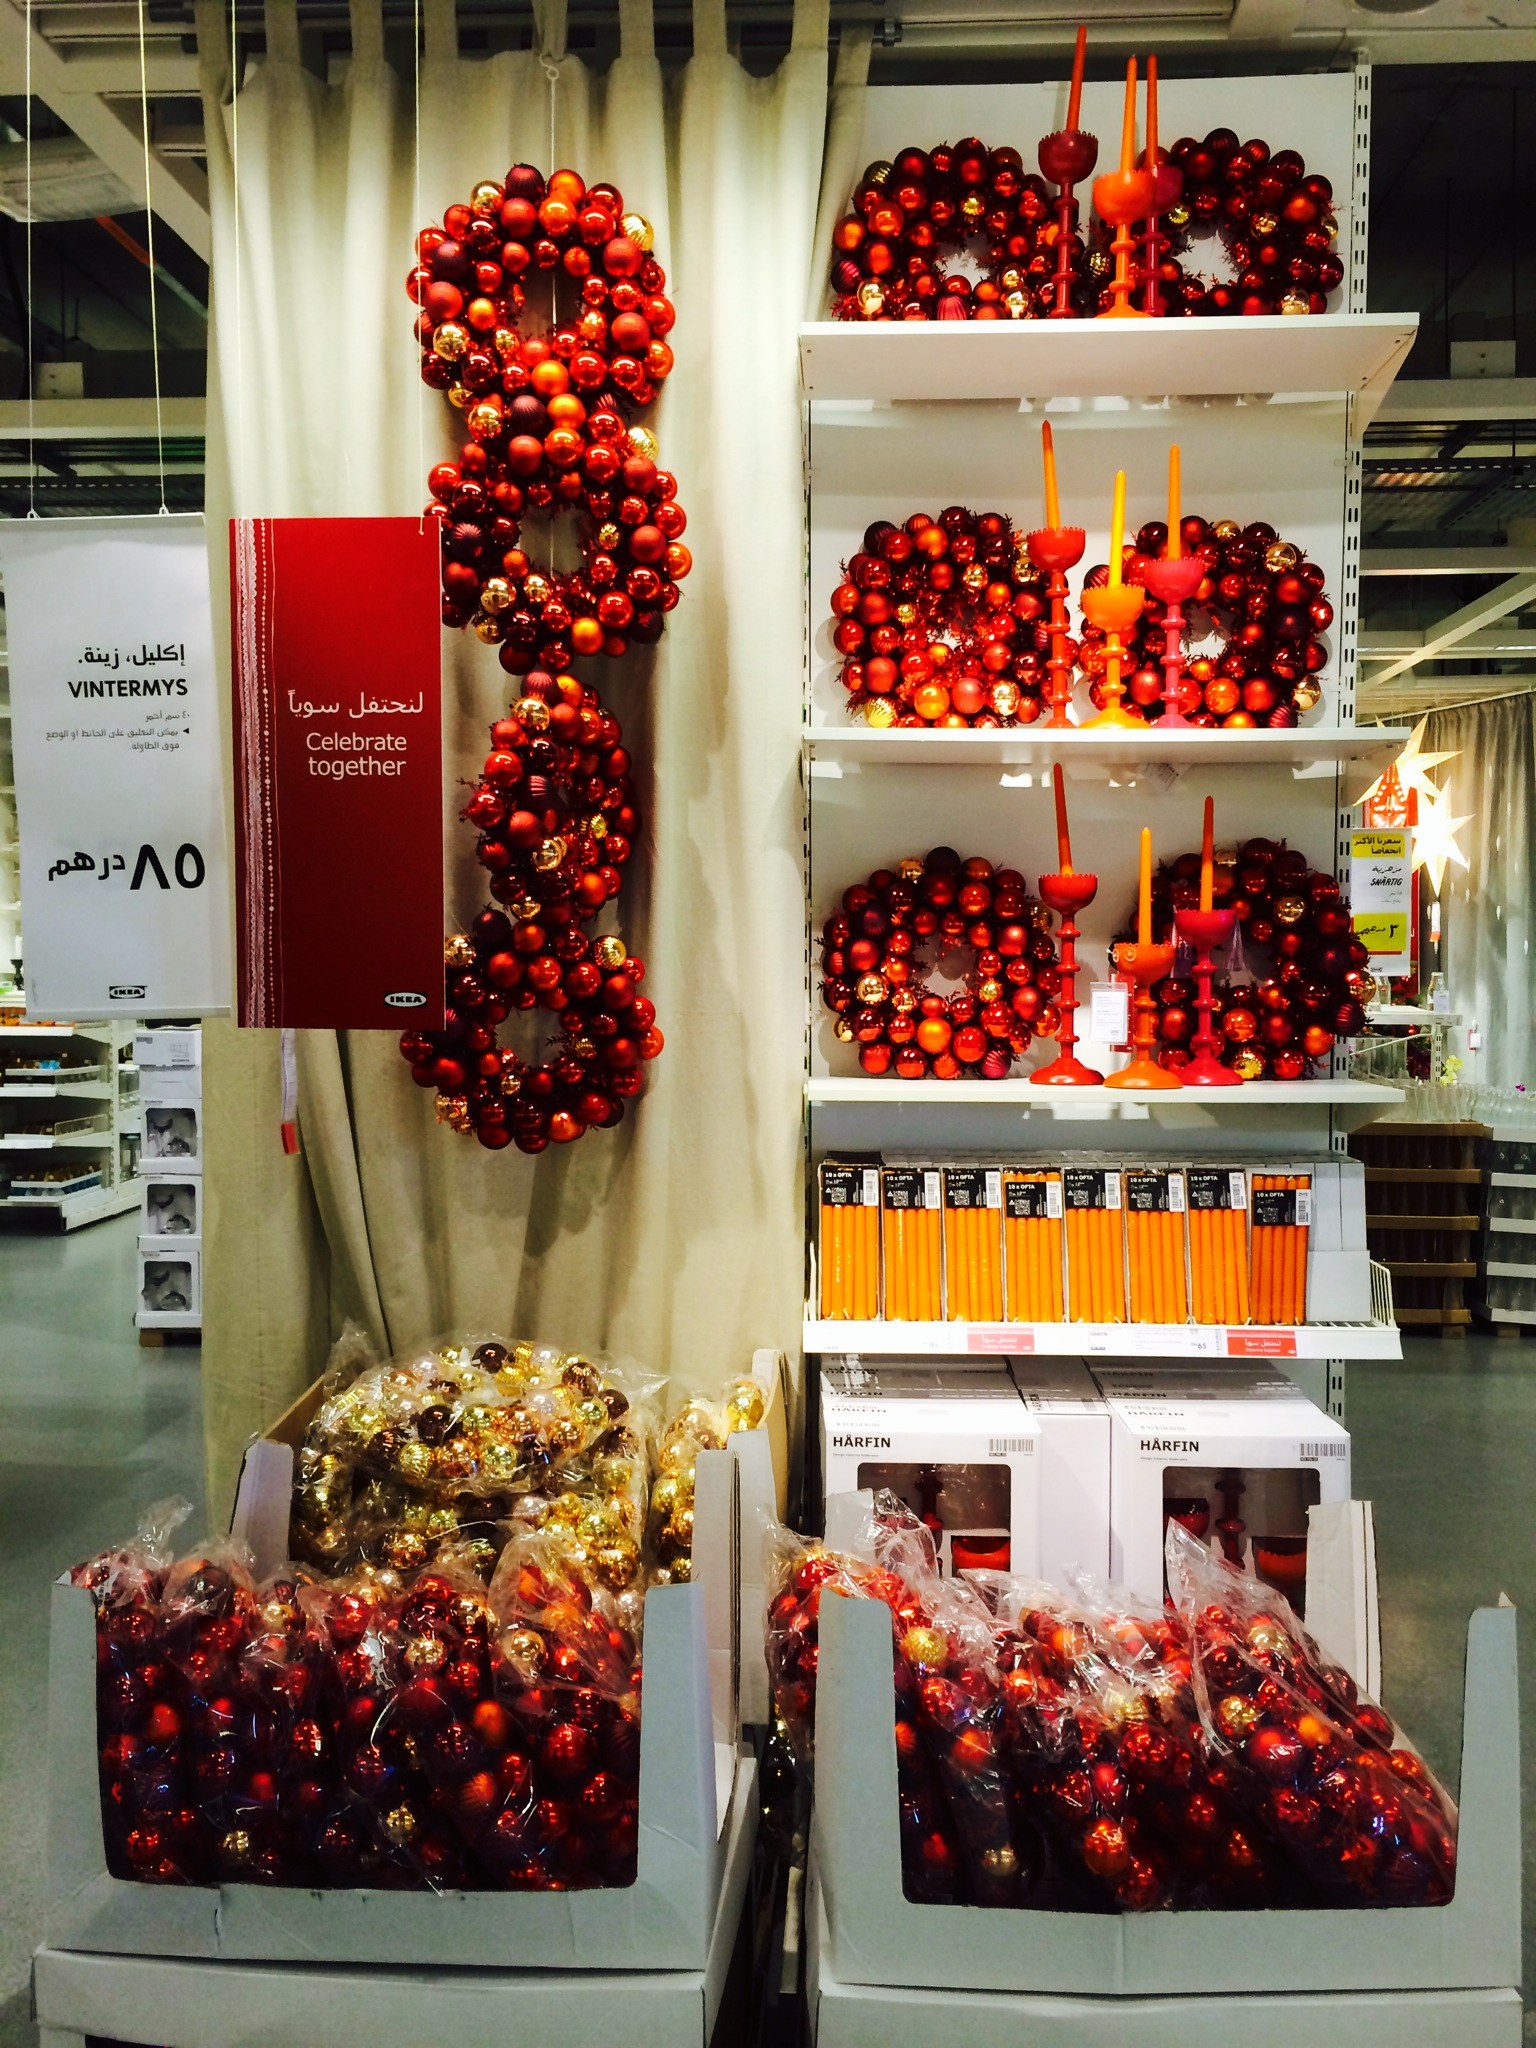 Ikea Uae It's Christmas Time In Ikea! – Blessed Days In Dubai